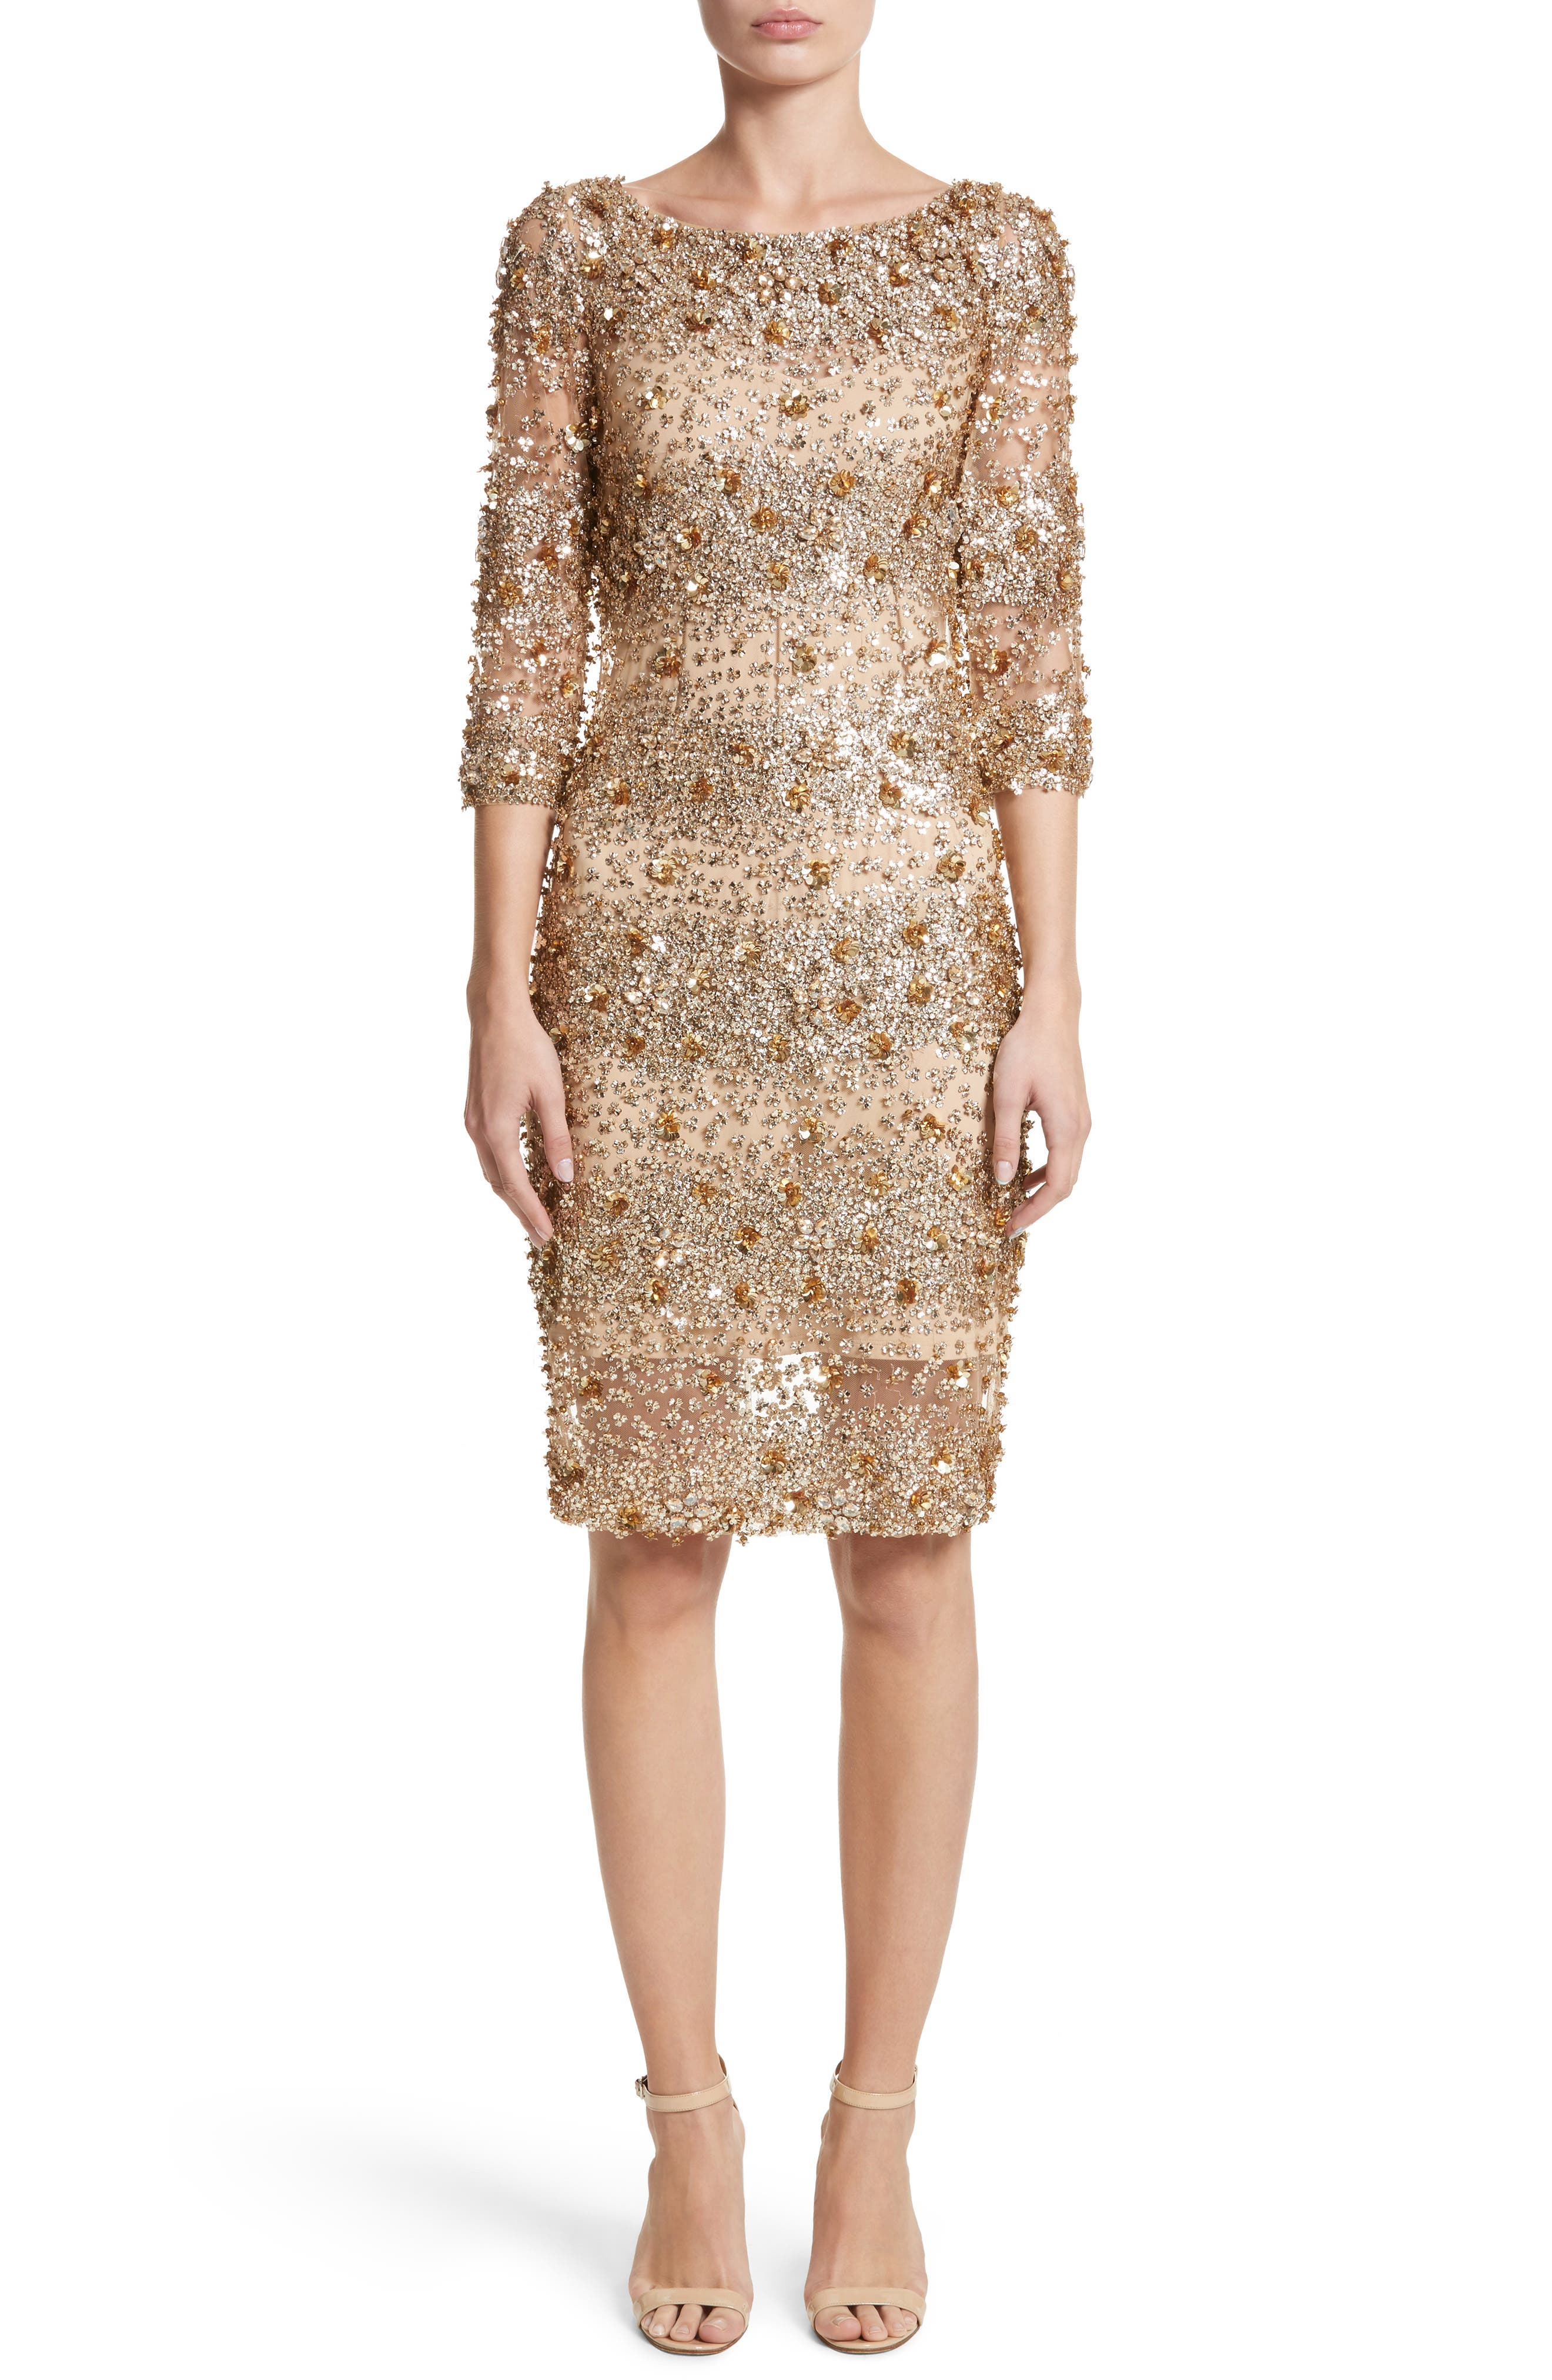 Alternate Image 1 Selected - Naeem Khan Embellished Dégradé Sheath Dress